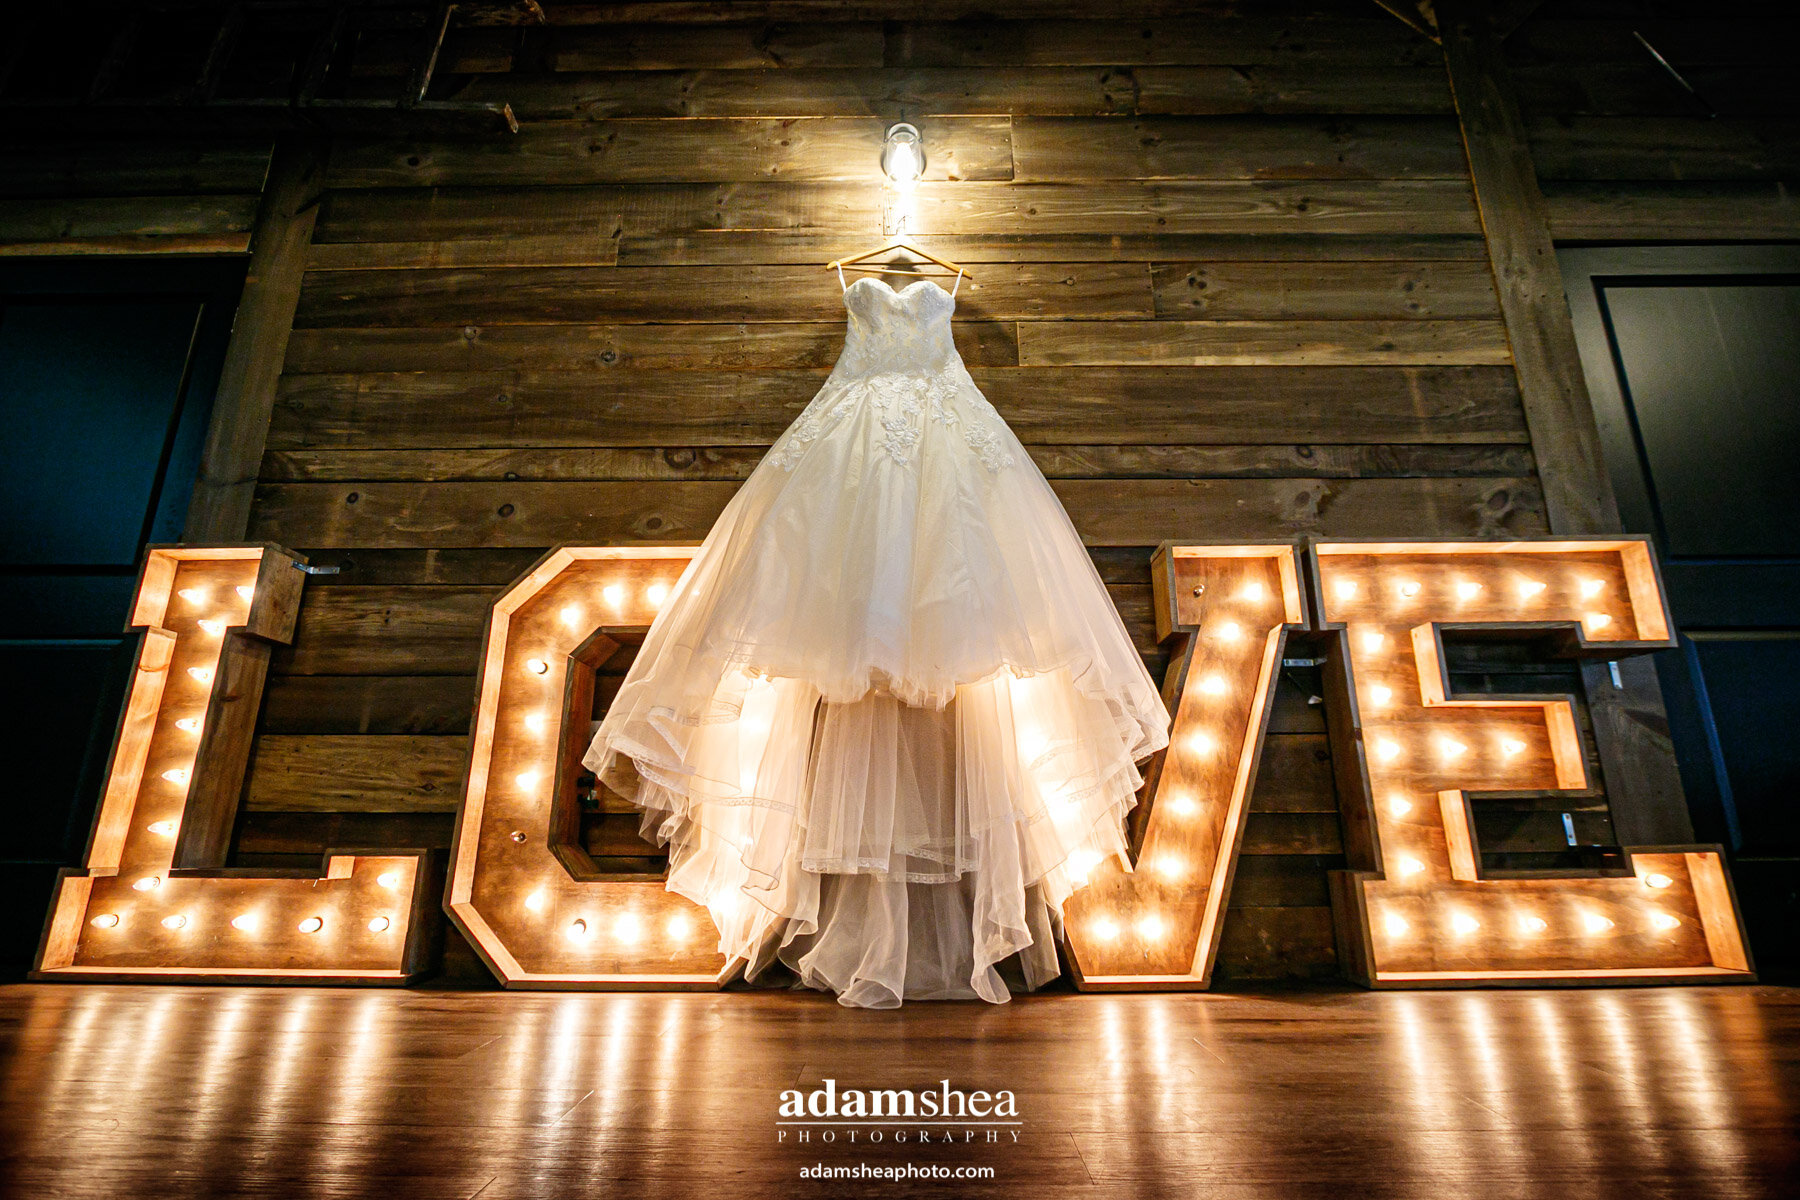 Gorgeous Wedding Fields at the Reserve - Stoughton WI - Adam Shea Photography - LOVE Sign and Wedding Dress